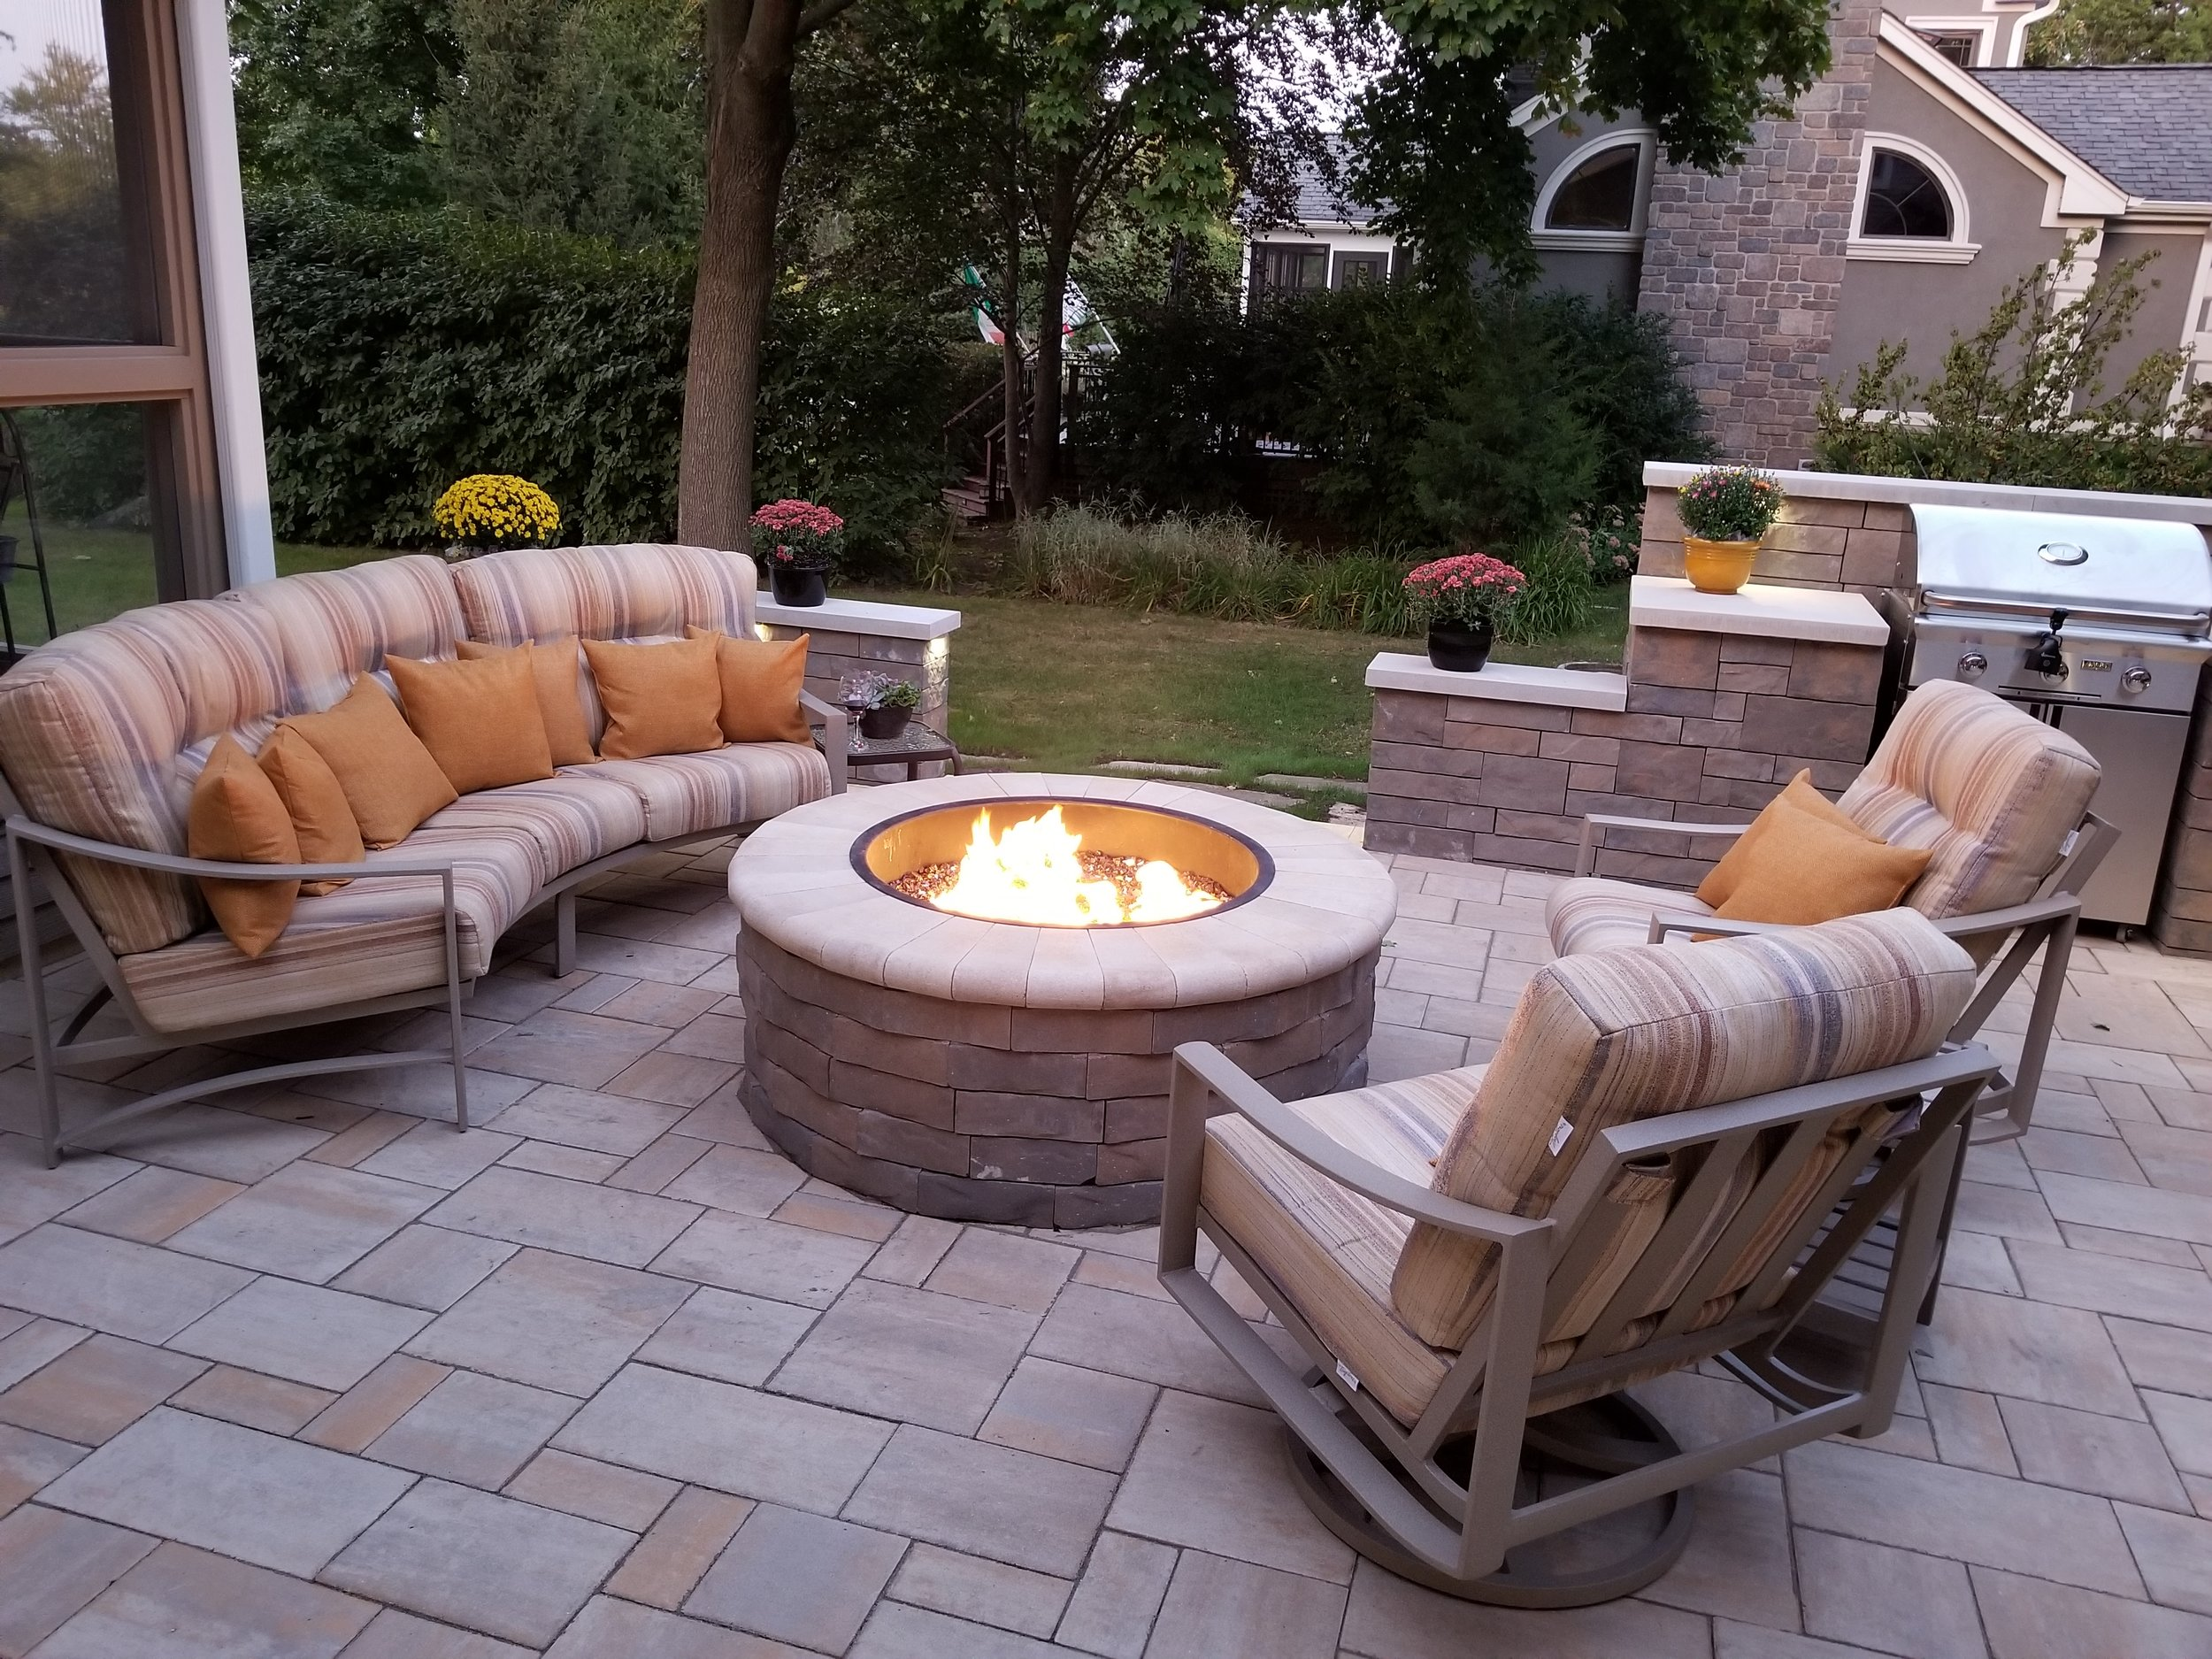 We created this lovely County paver patio with fire pit and an enclosed barbecue with Techobloc walls.